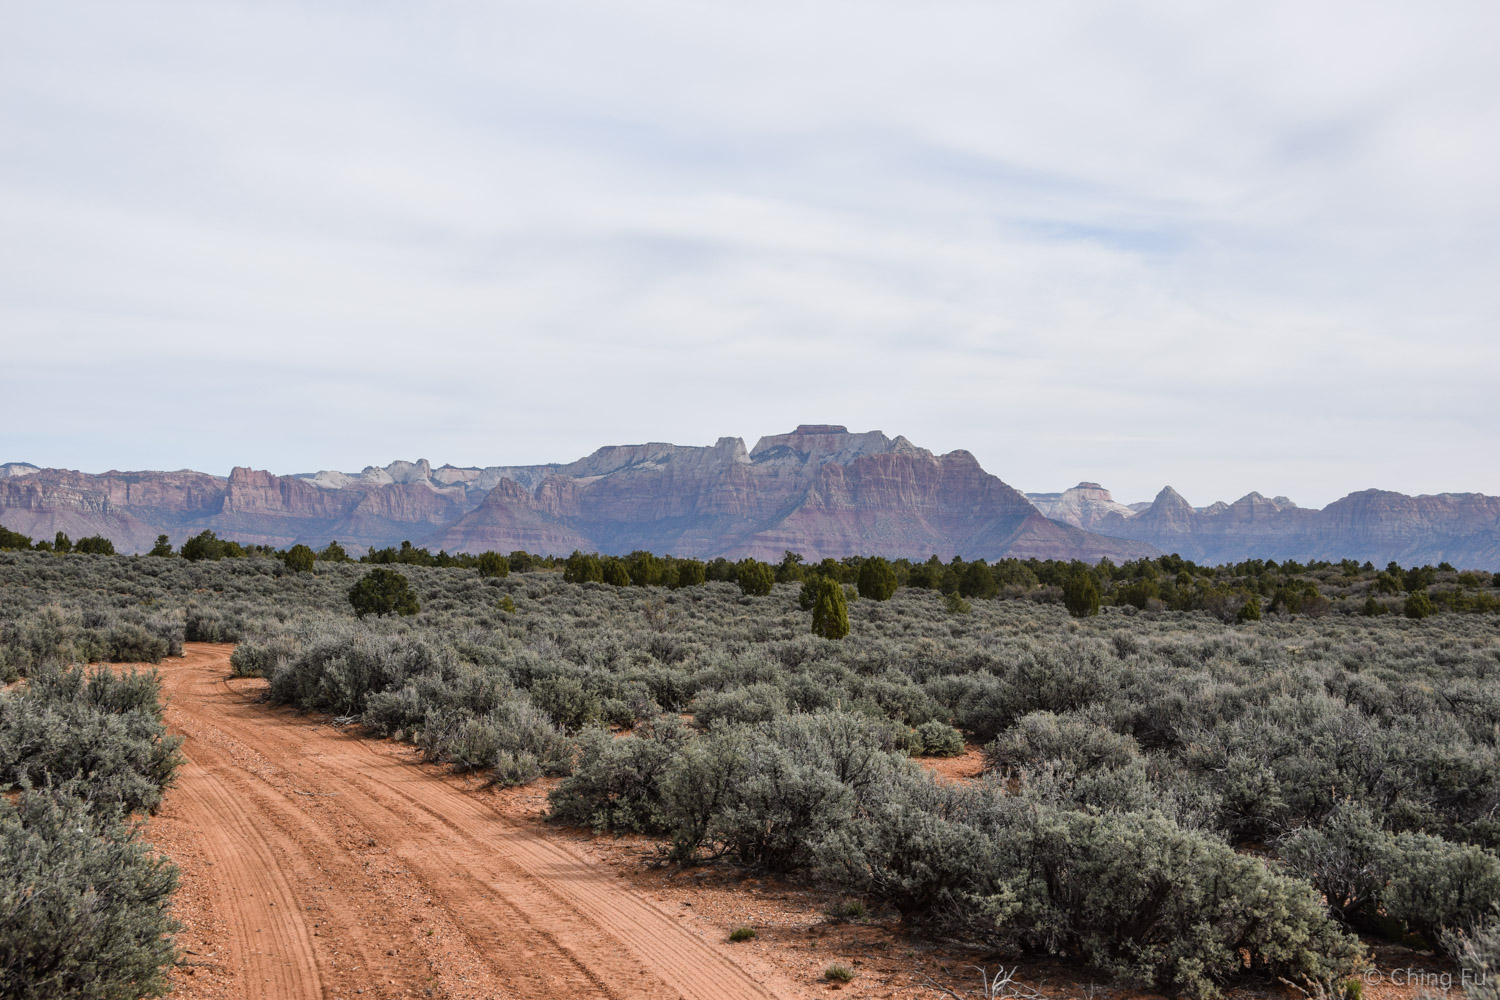 The drive to the trailhead includes views of Zion.